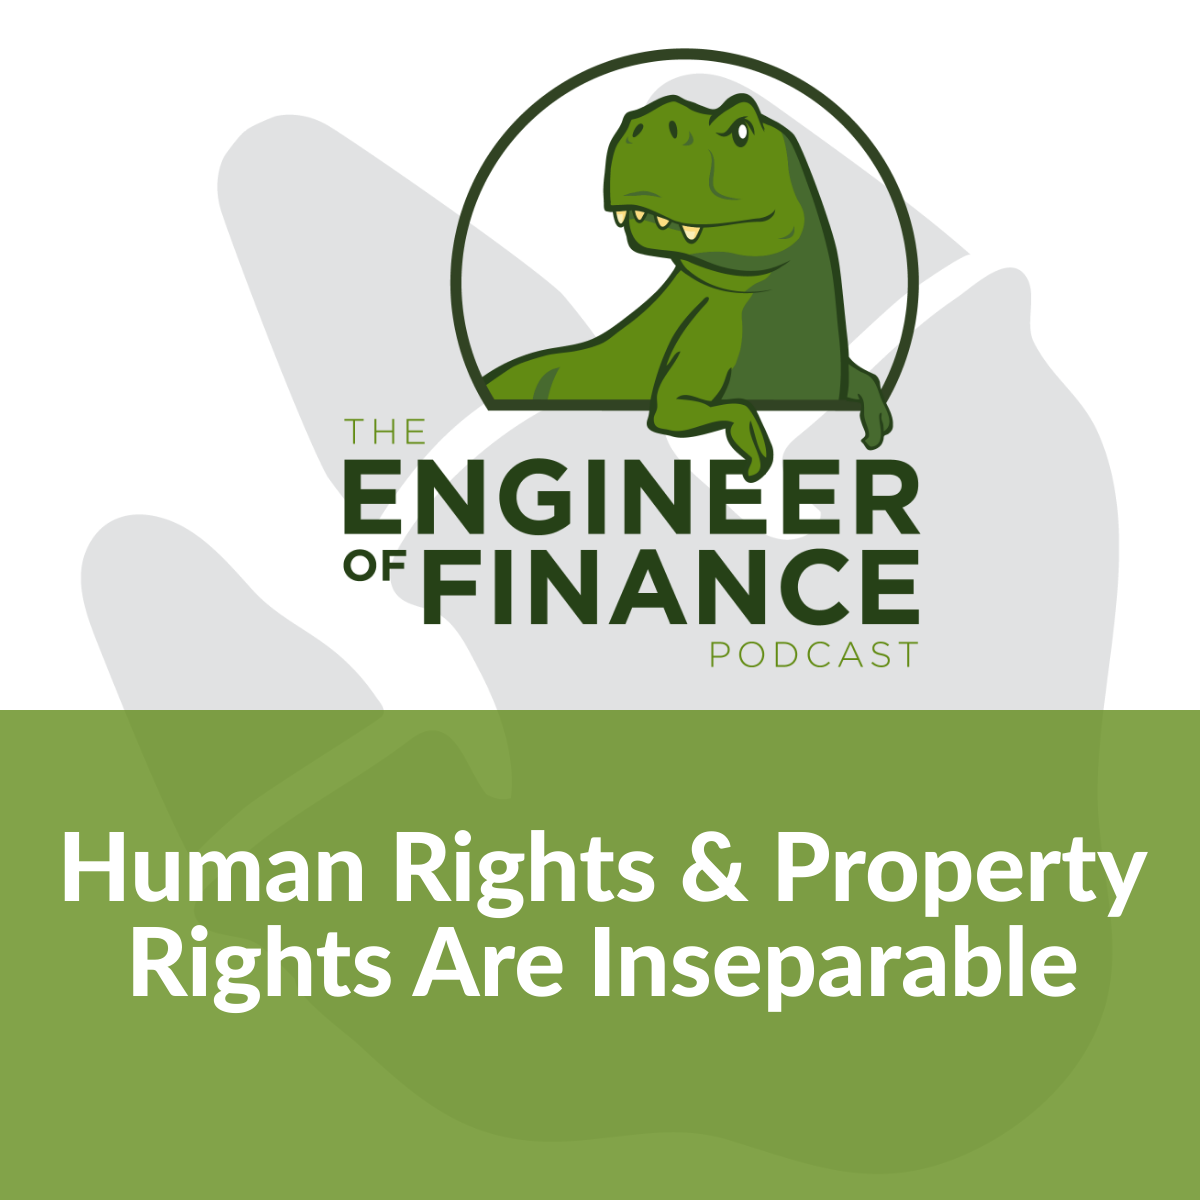 Human Rights & Property Rights Are Inseparable – Episode 139